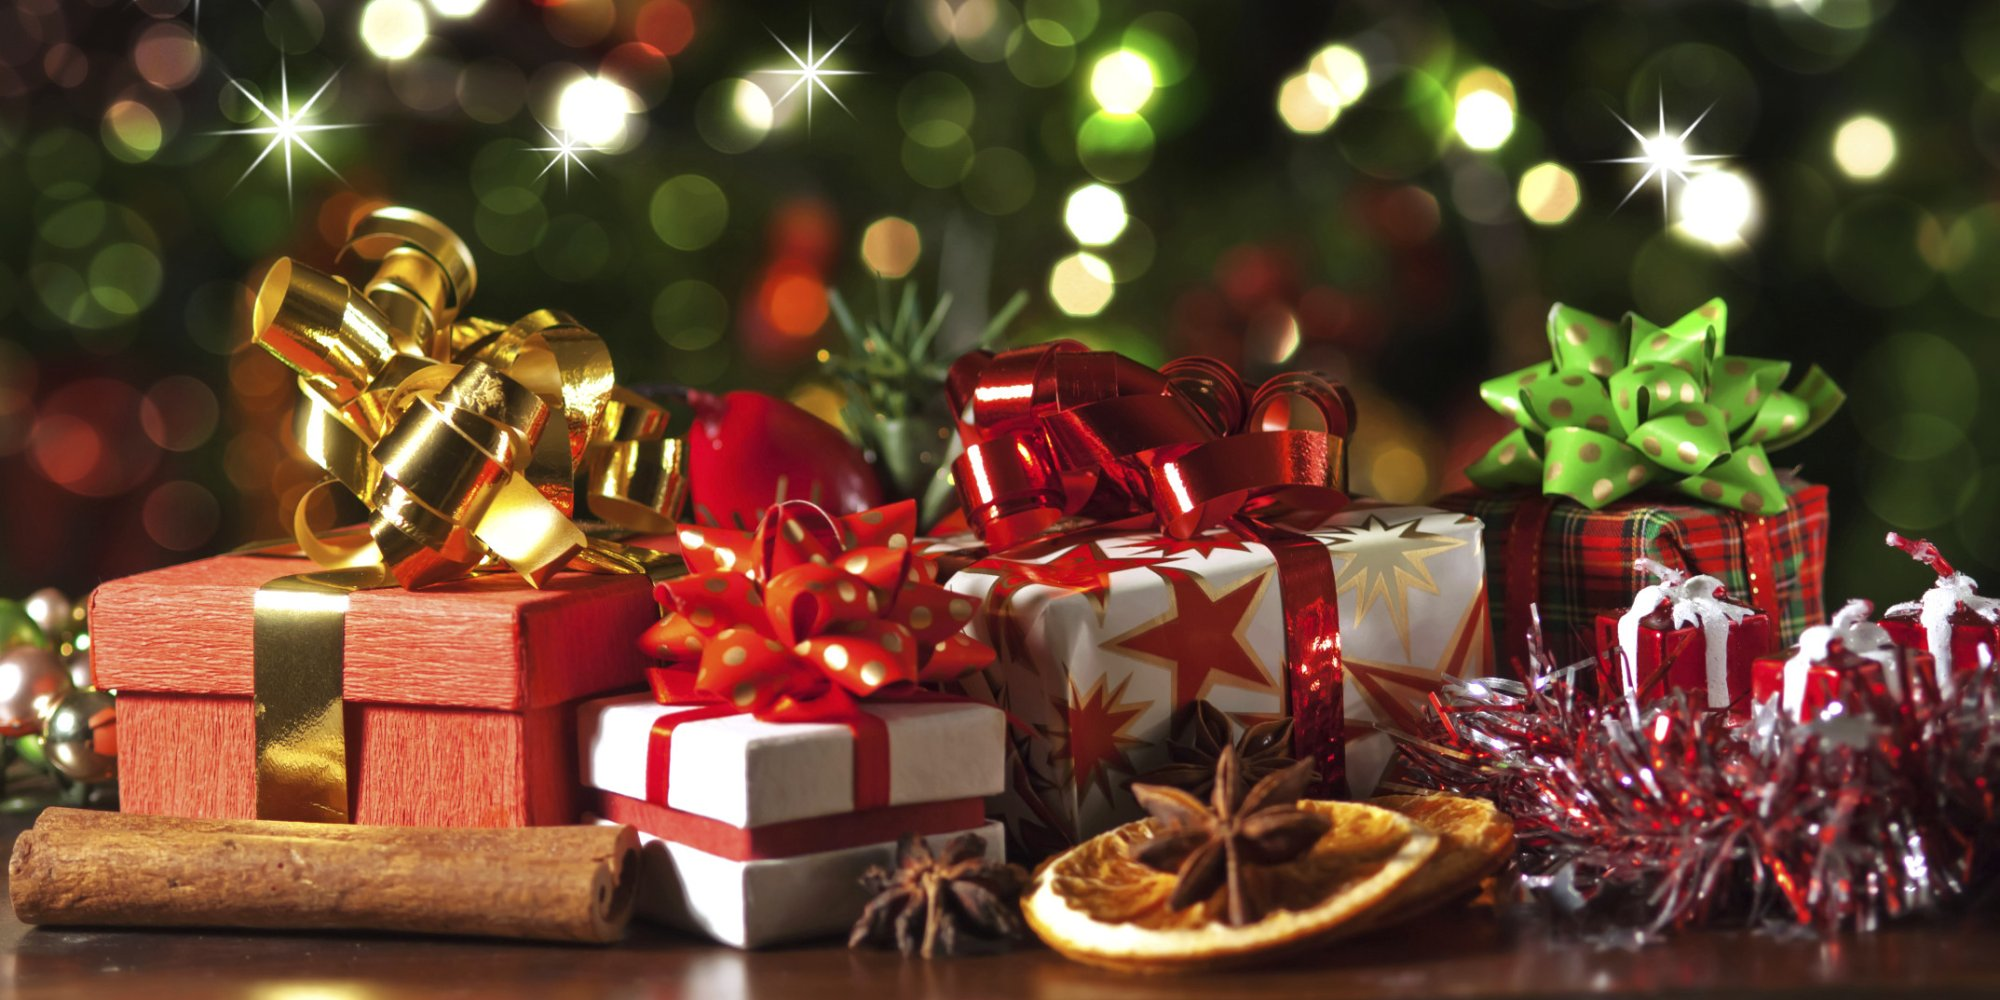 Top 10 Christmas Gifts For Less Than £50